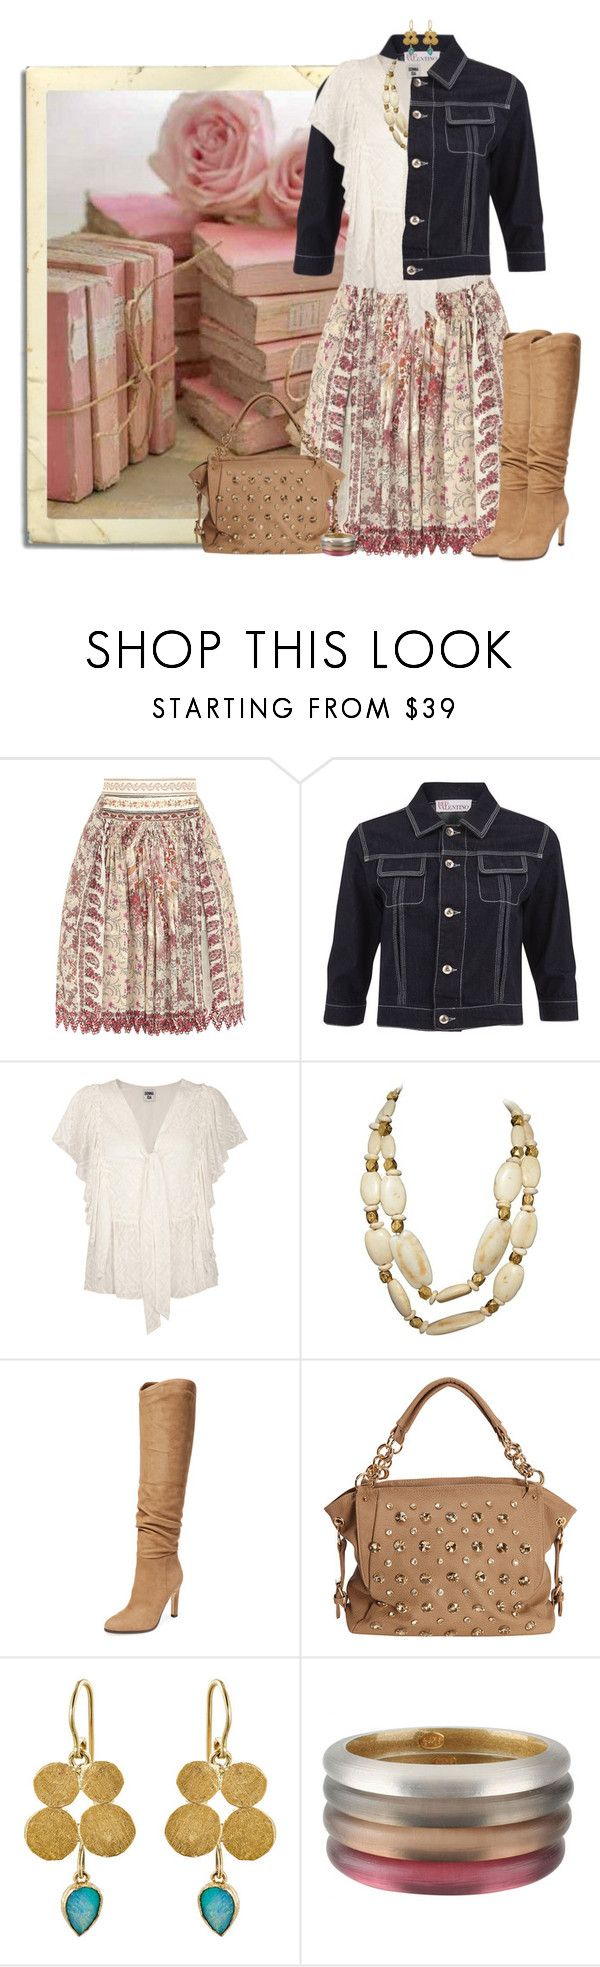 """woo me with books"" by niteowlgirl ❤ liked on Polyvore featuring Prada, Etro, RED Valentino, Chanel, Sigerson Morrison, SW Global, Judy Geib and Alexis Bittar"